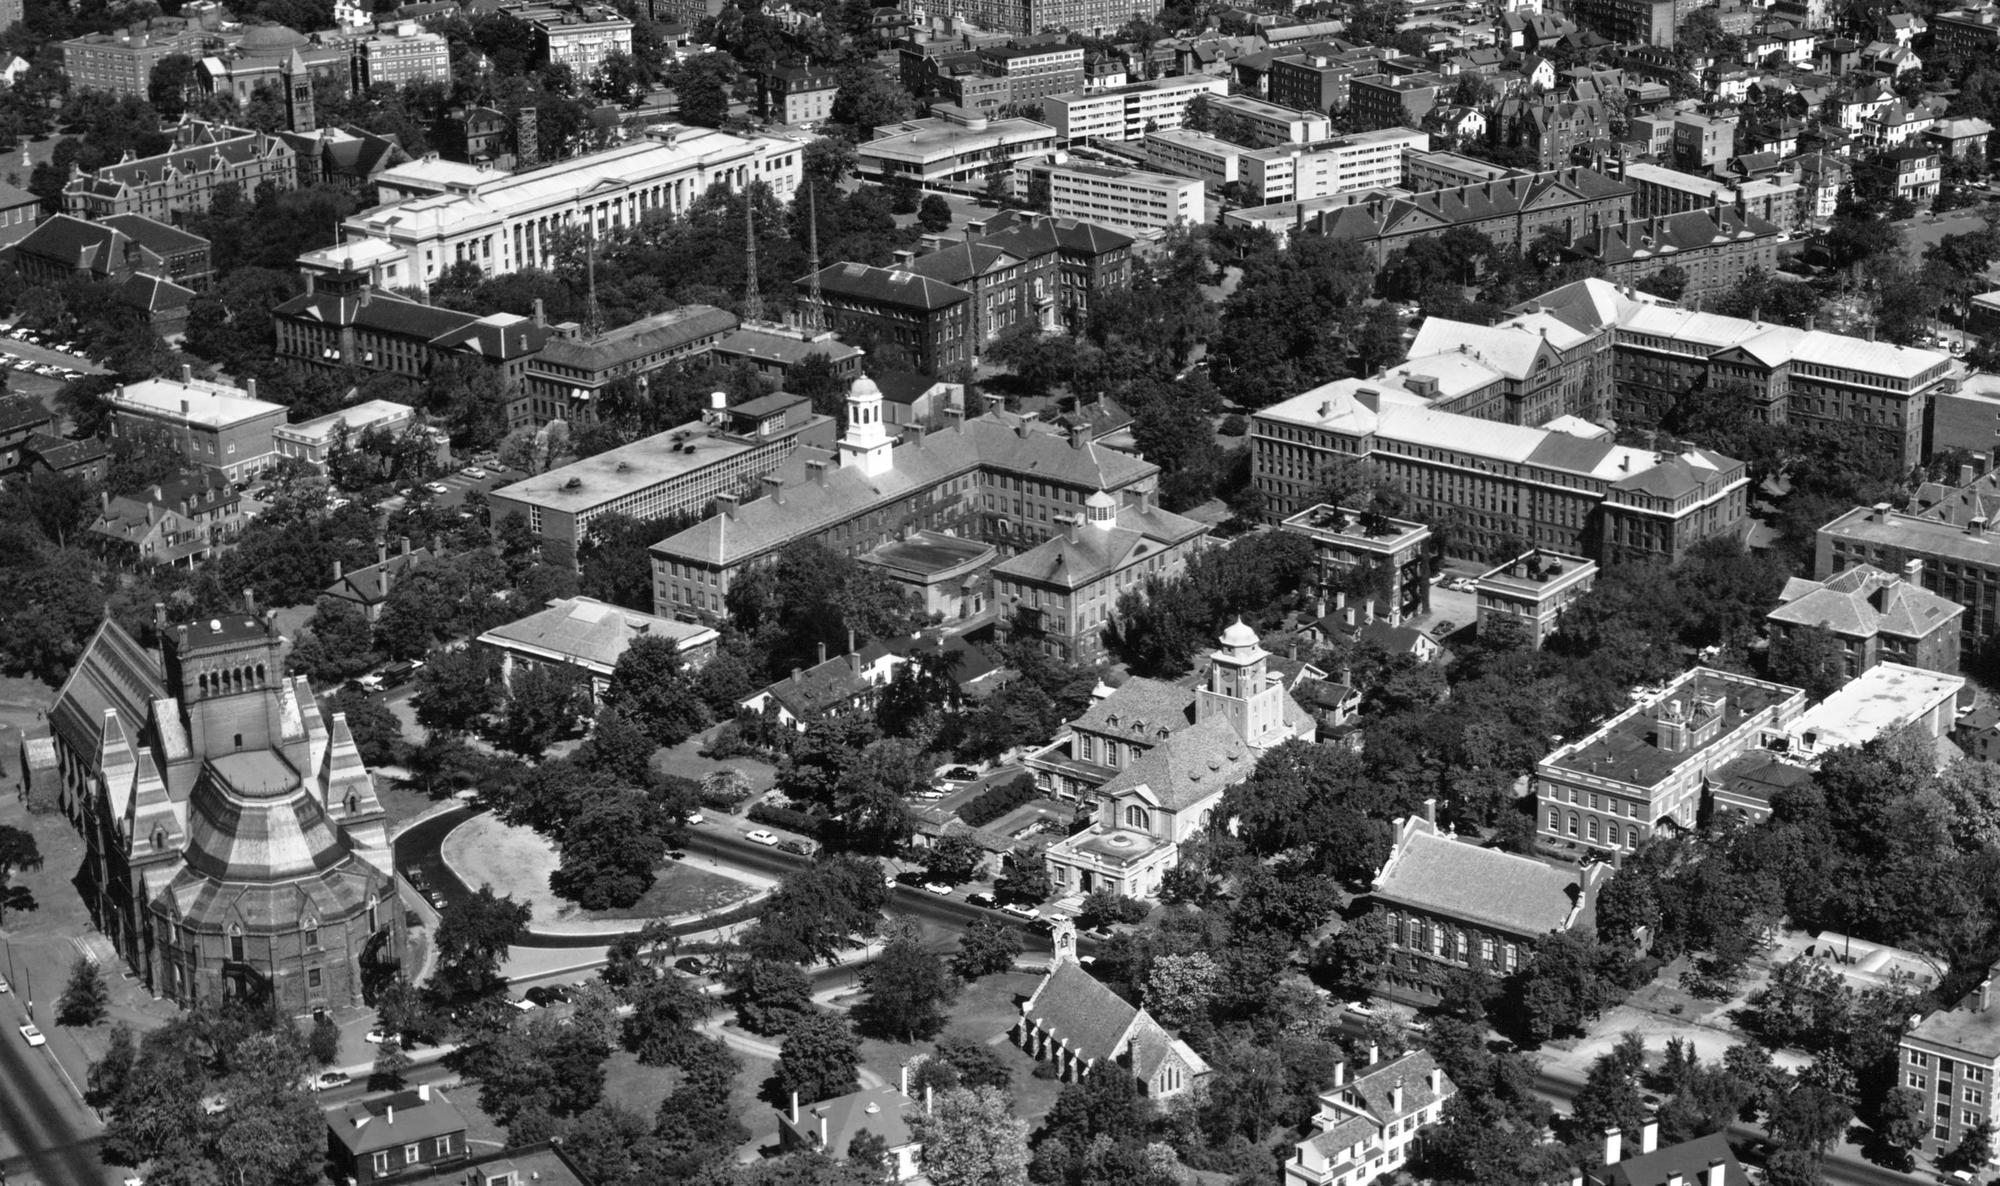 Aerial view of the Cambridge campus from 1958. PIRC# P.1958.CA.0070